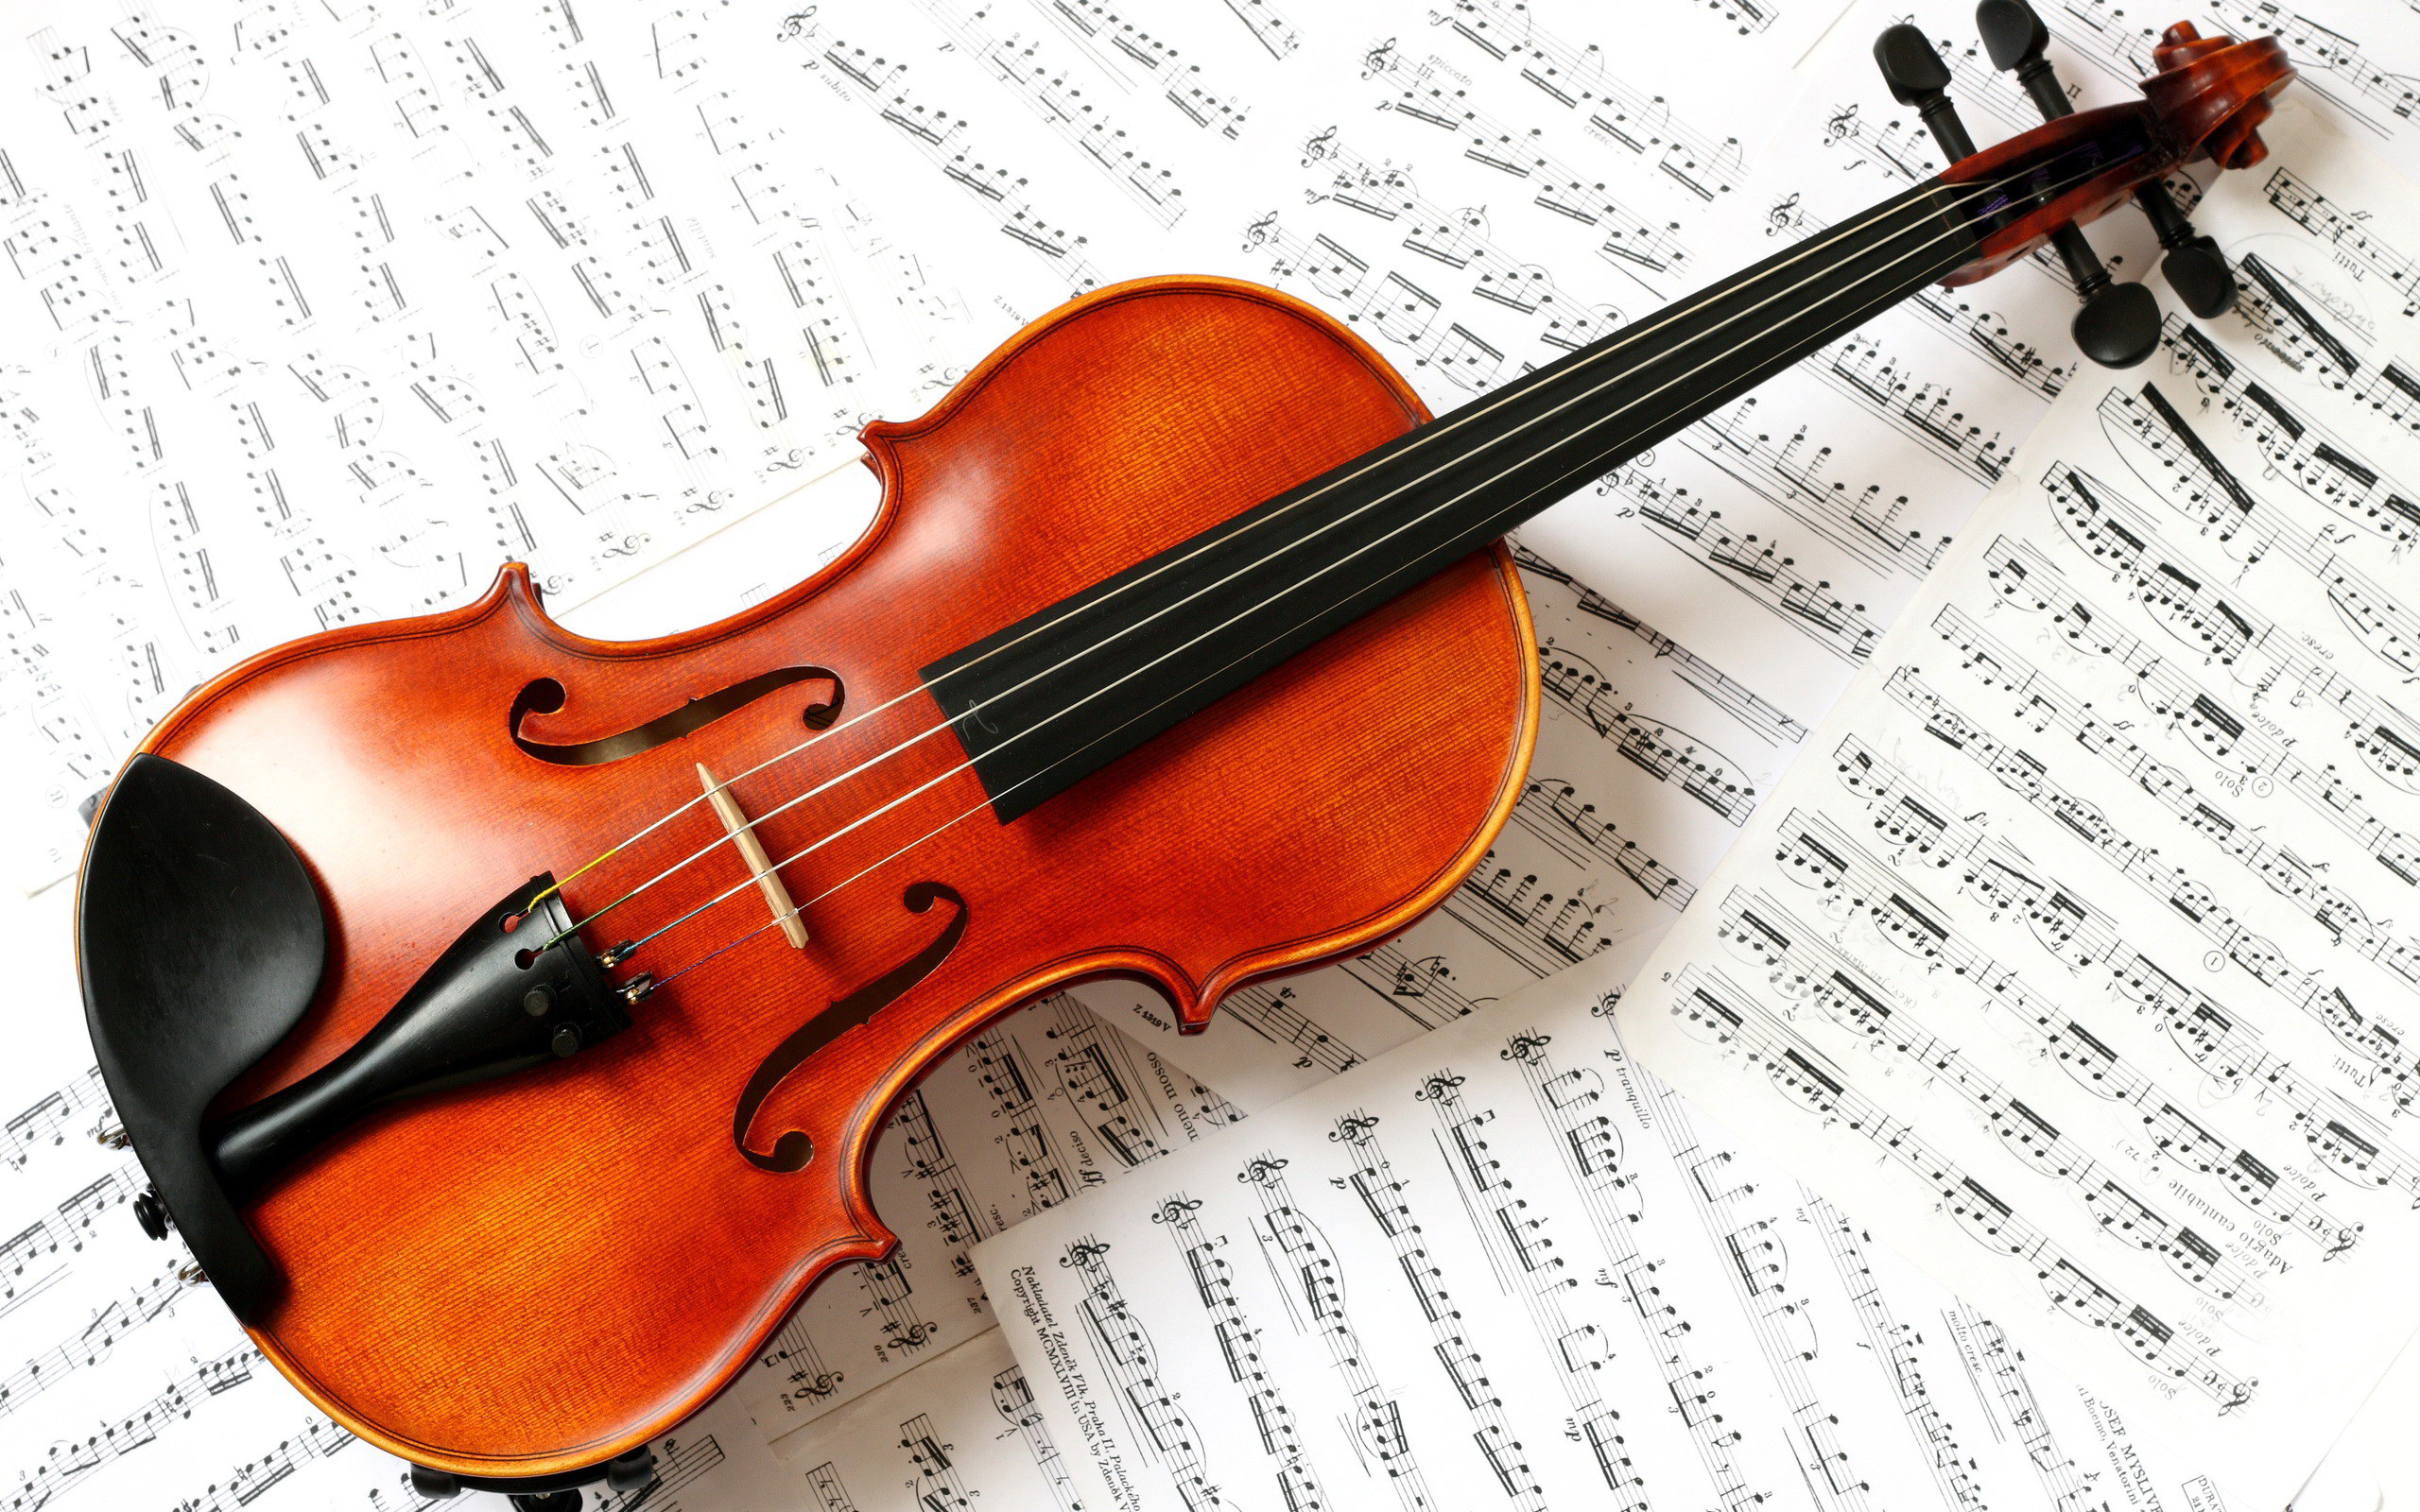 1920x1200 Backgrounds Music Sheet Background Violin Powerpoint Wallpapers Hd